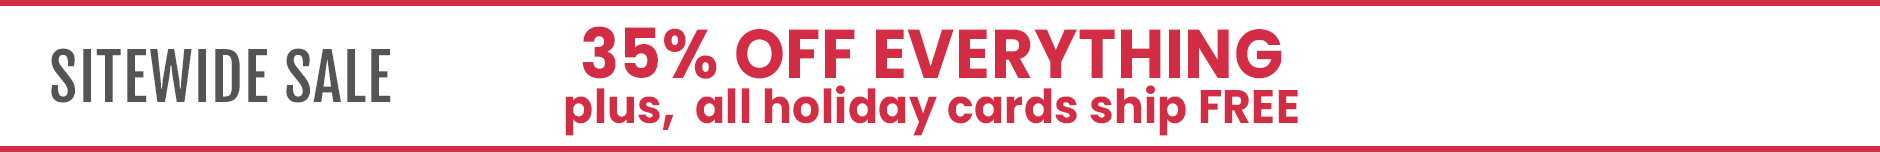 Current Promo: Sitewide Sale 35% OFF Everything  plus, all holiday cards ship free